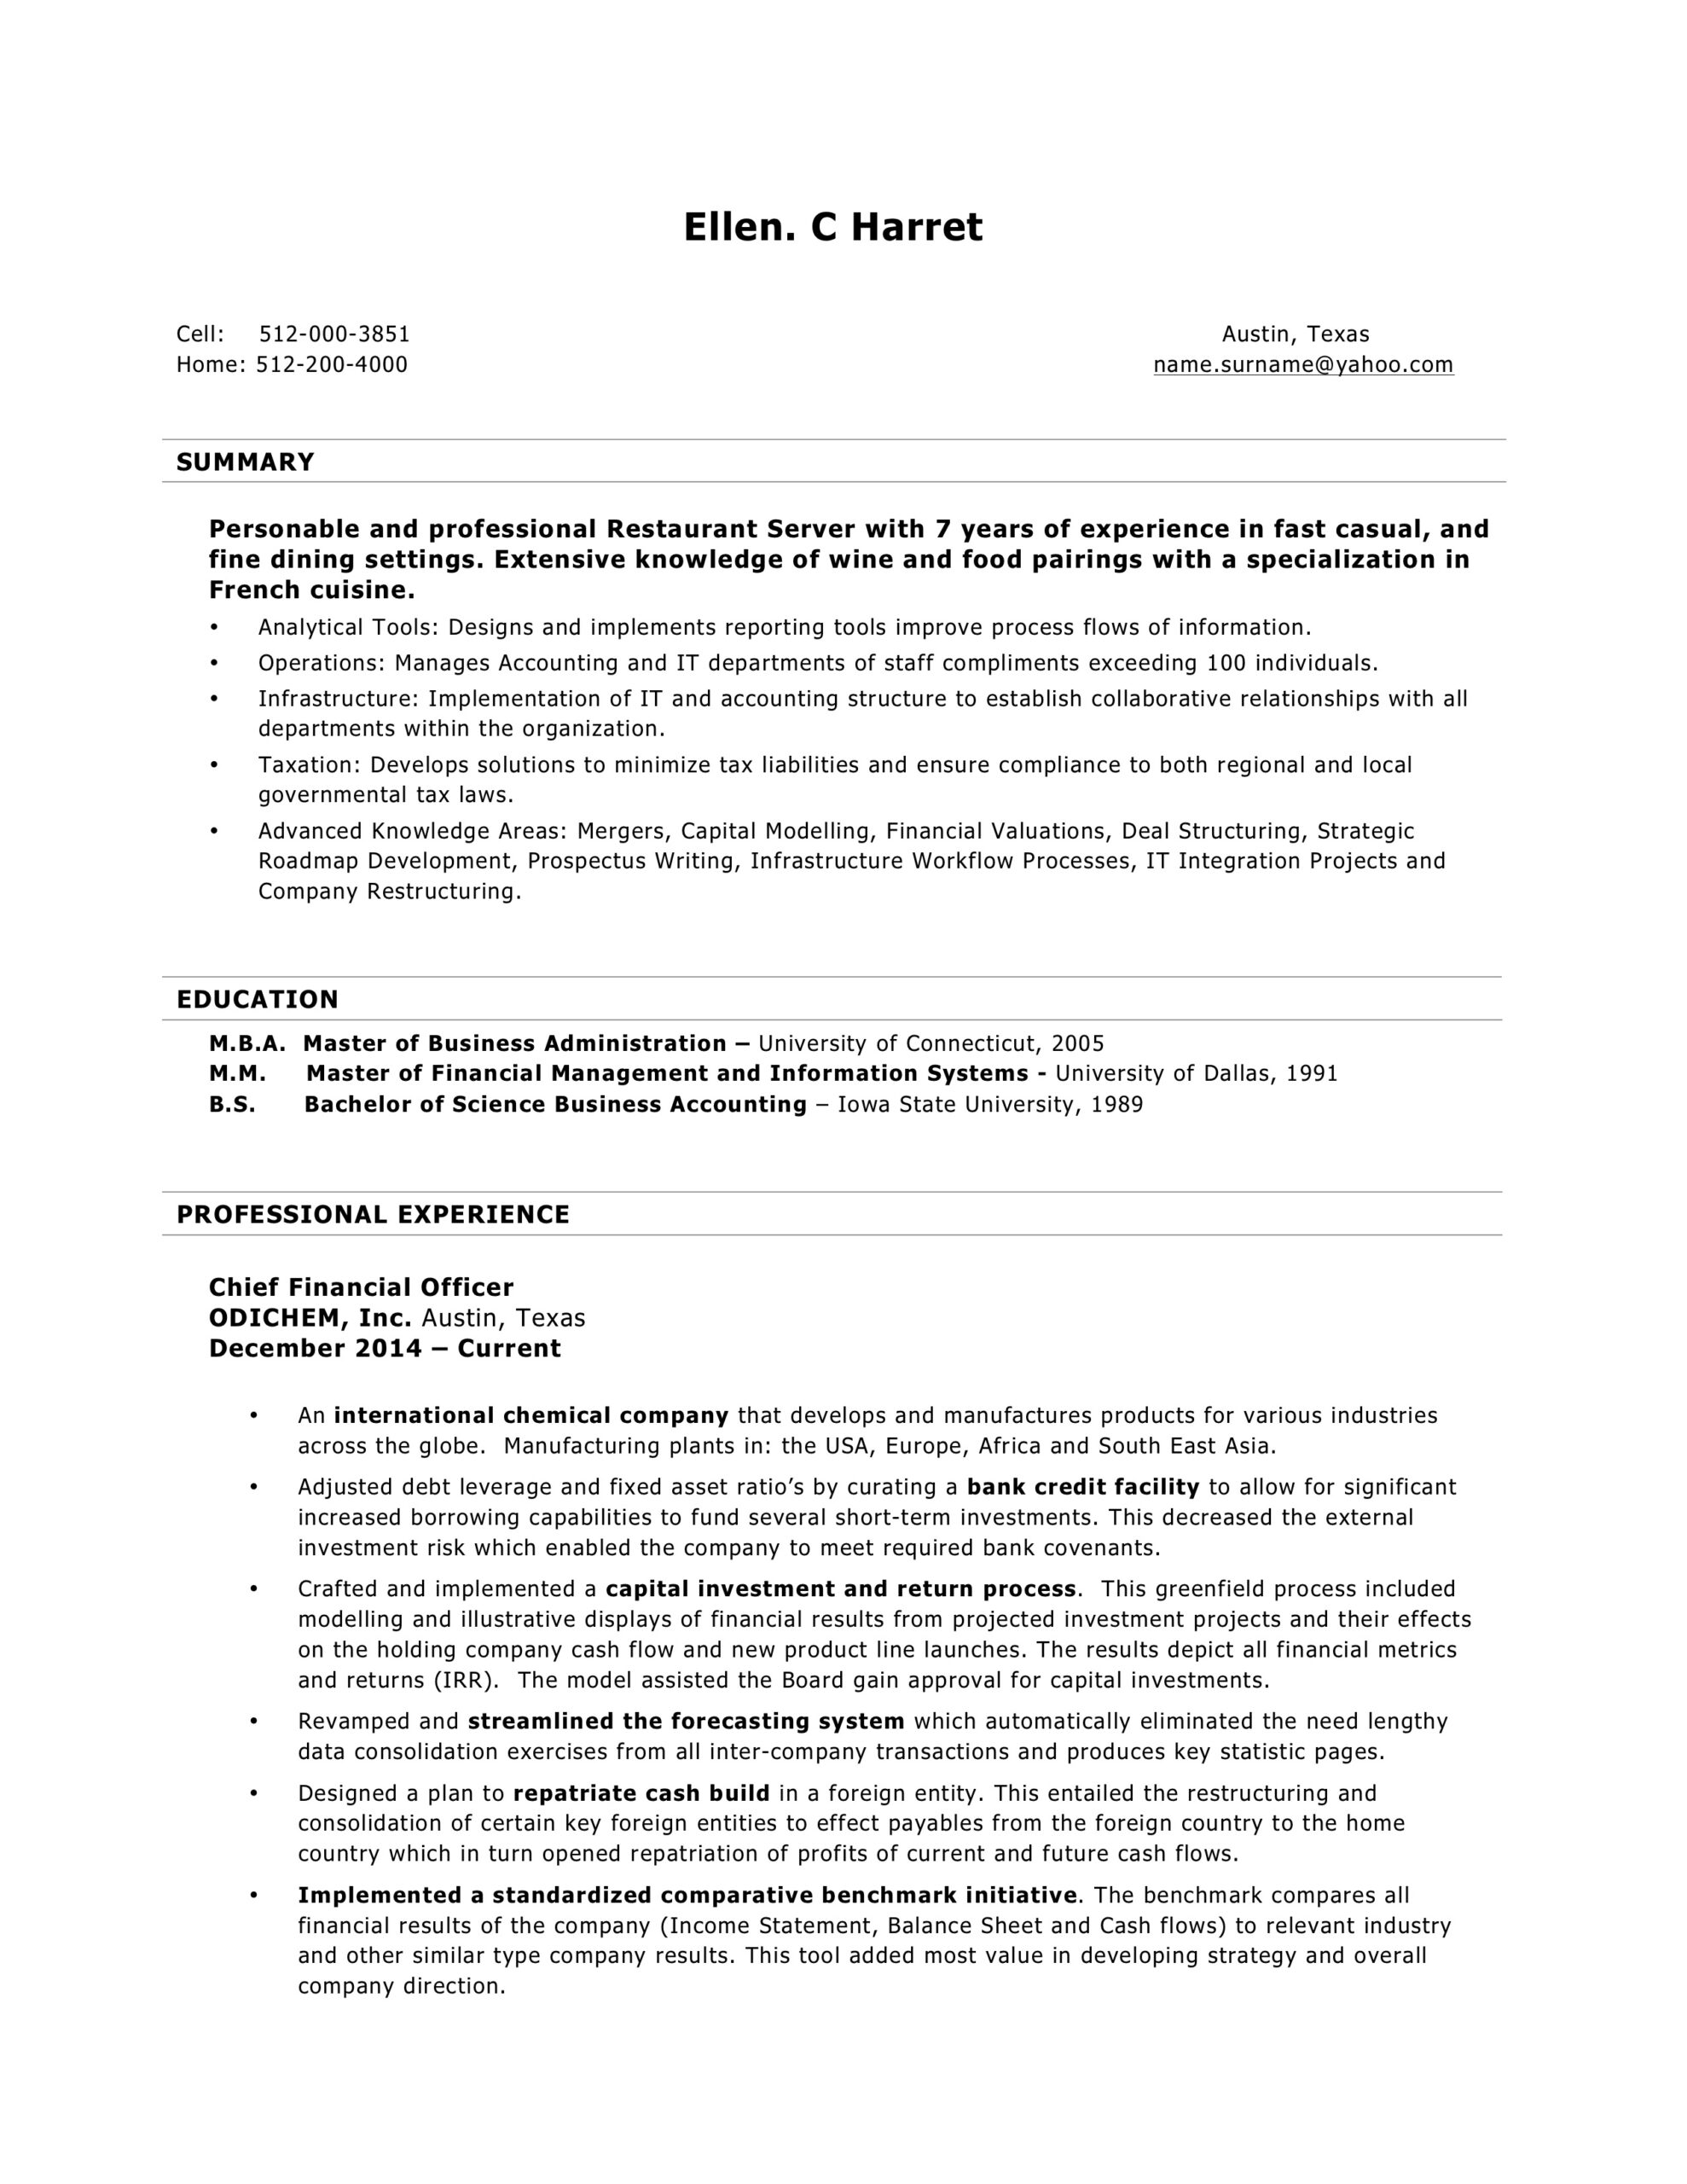 free word resume templates in ms does have server template employee engagement Resume Does Word Have Resume Templates